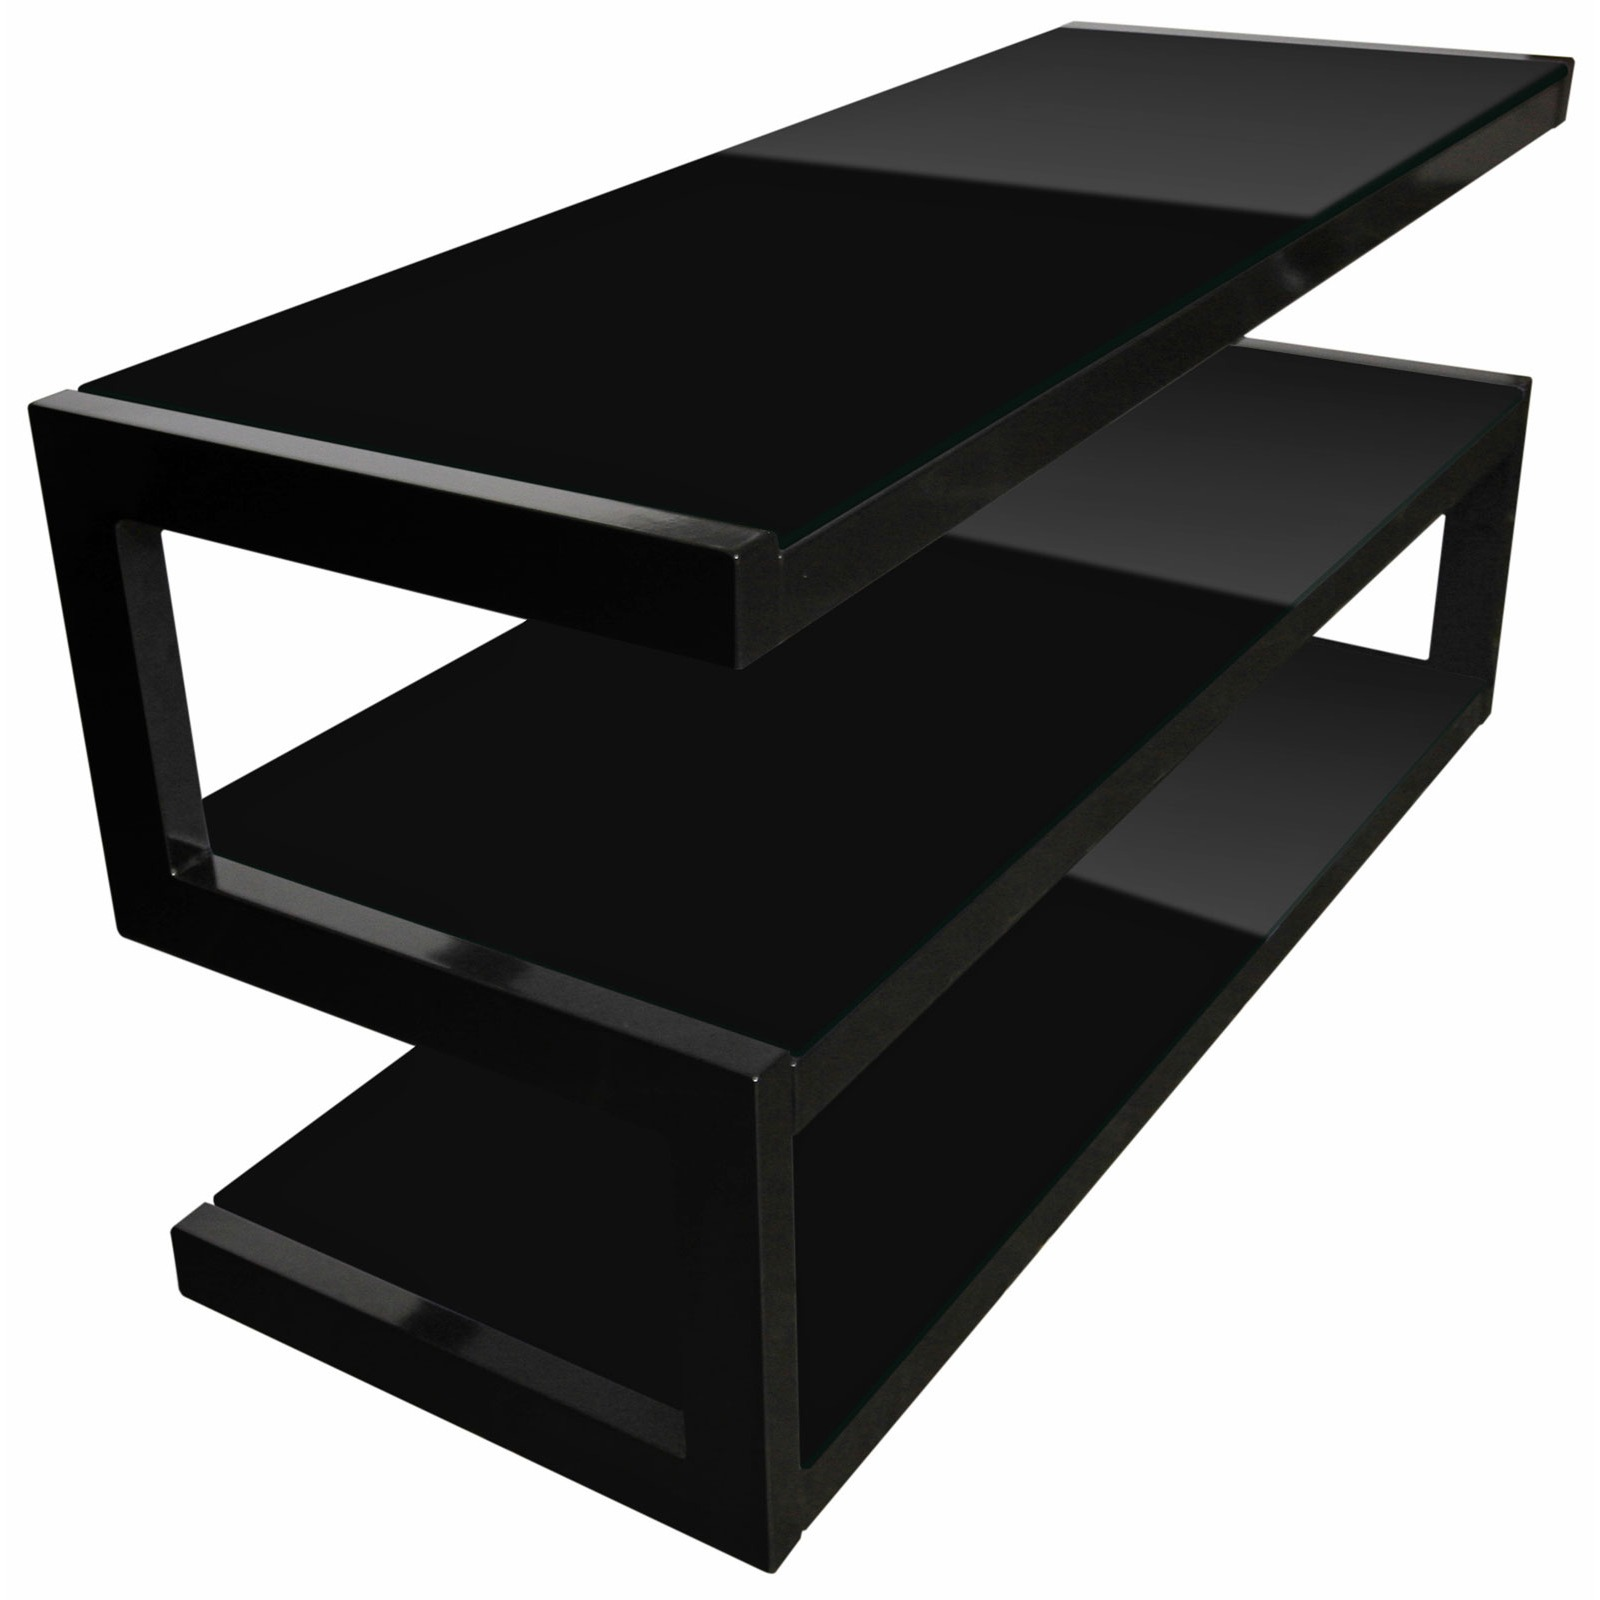 norstone esse noir meuble tv norstone sur ldlc. Black Bedroom Furniture Sets. Home Design Ideas